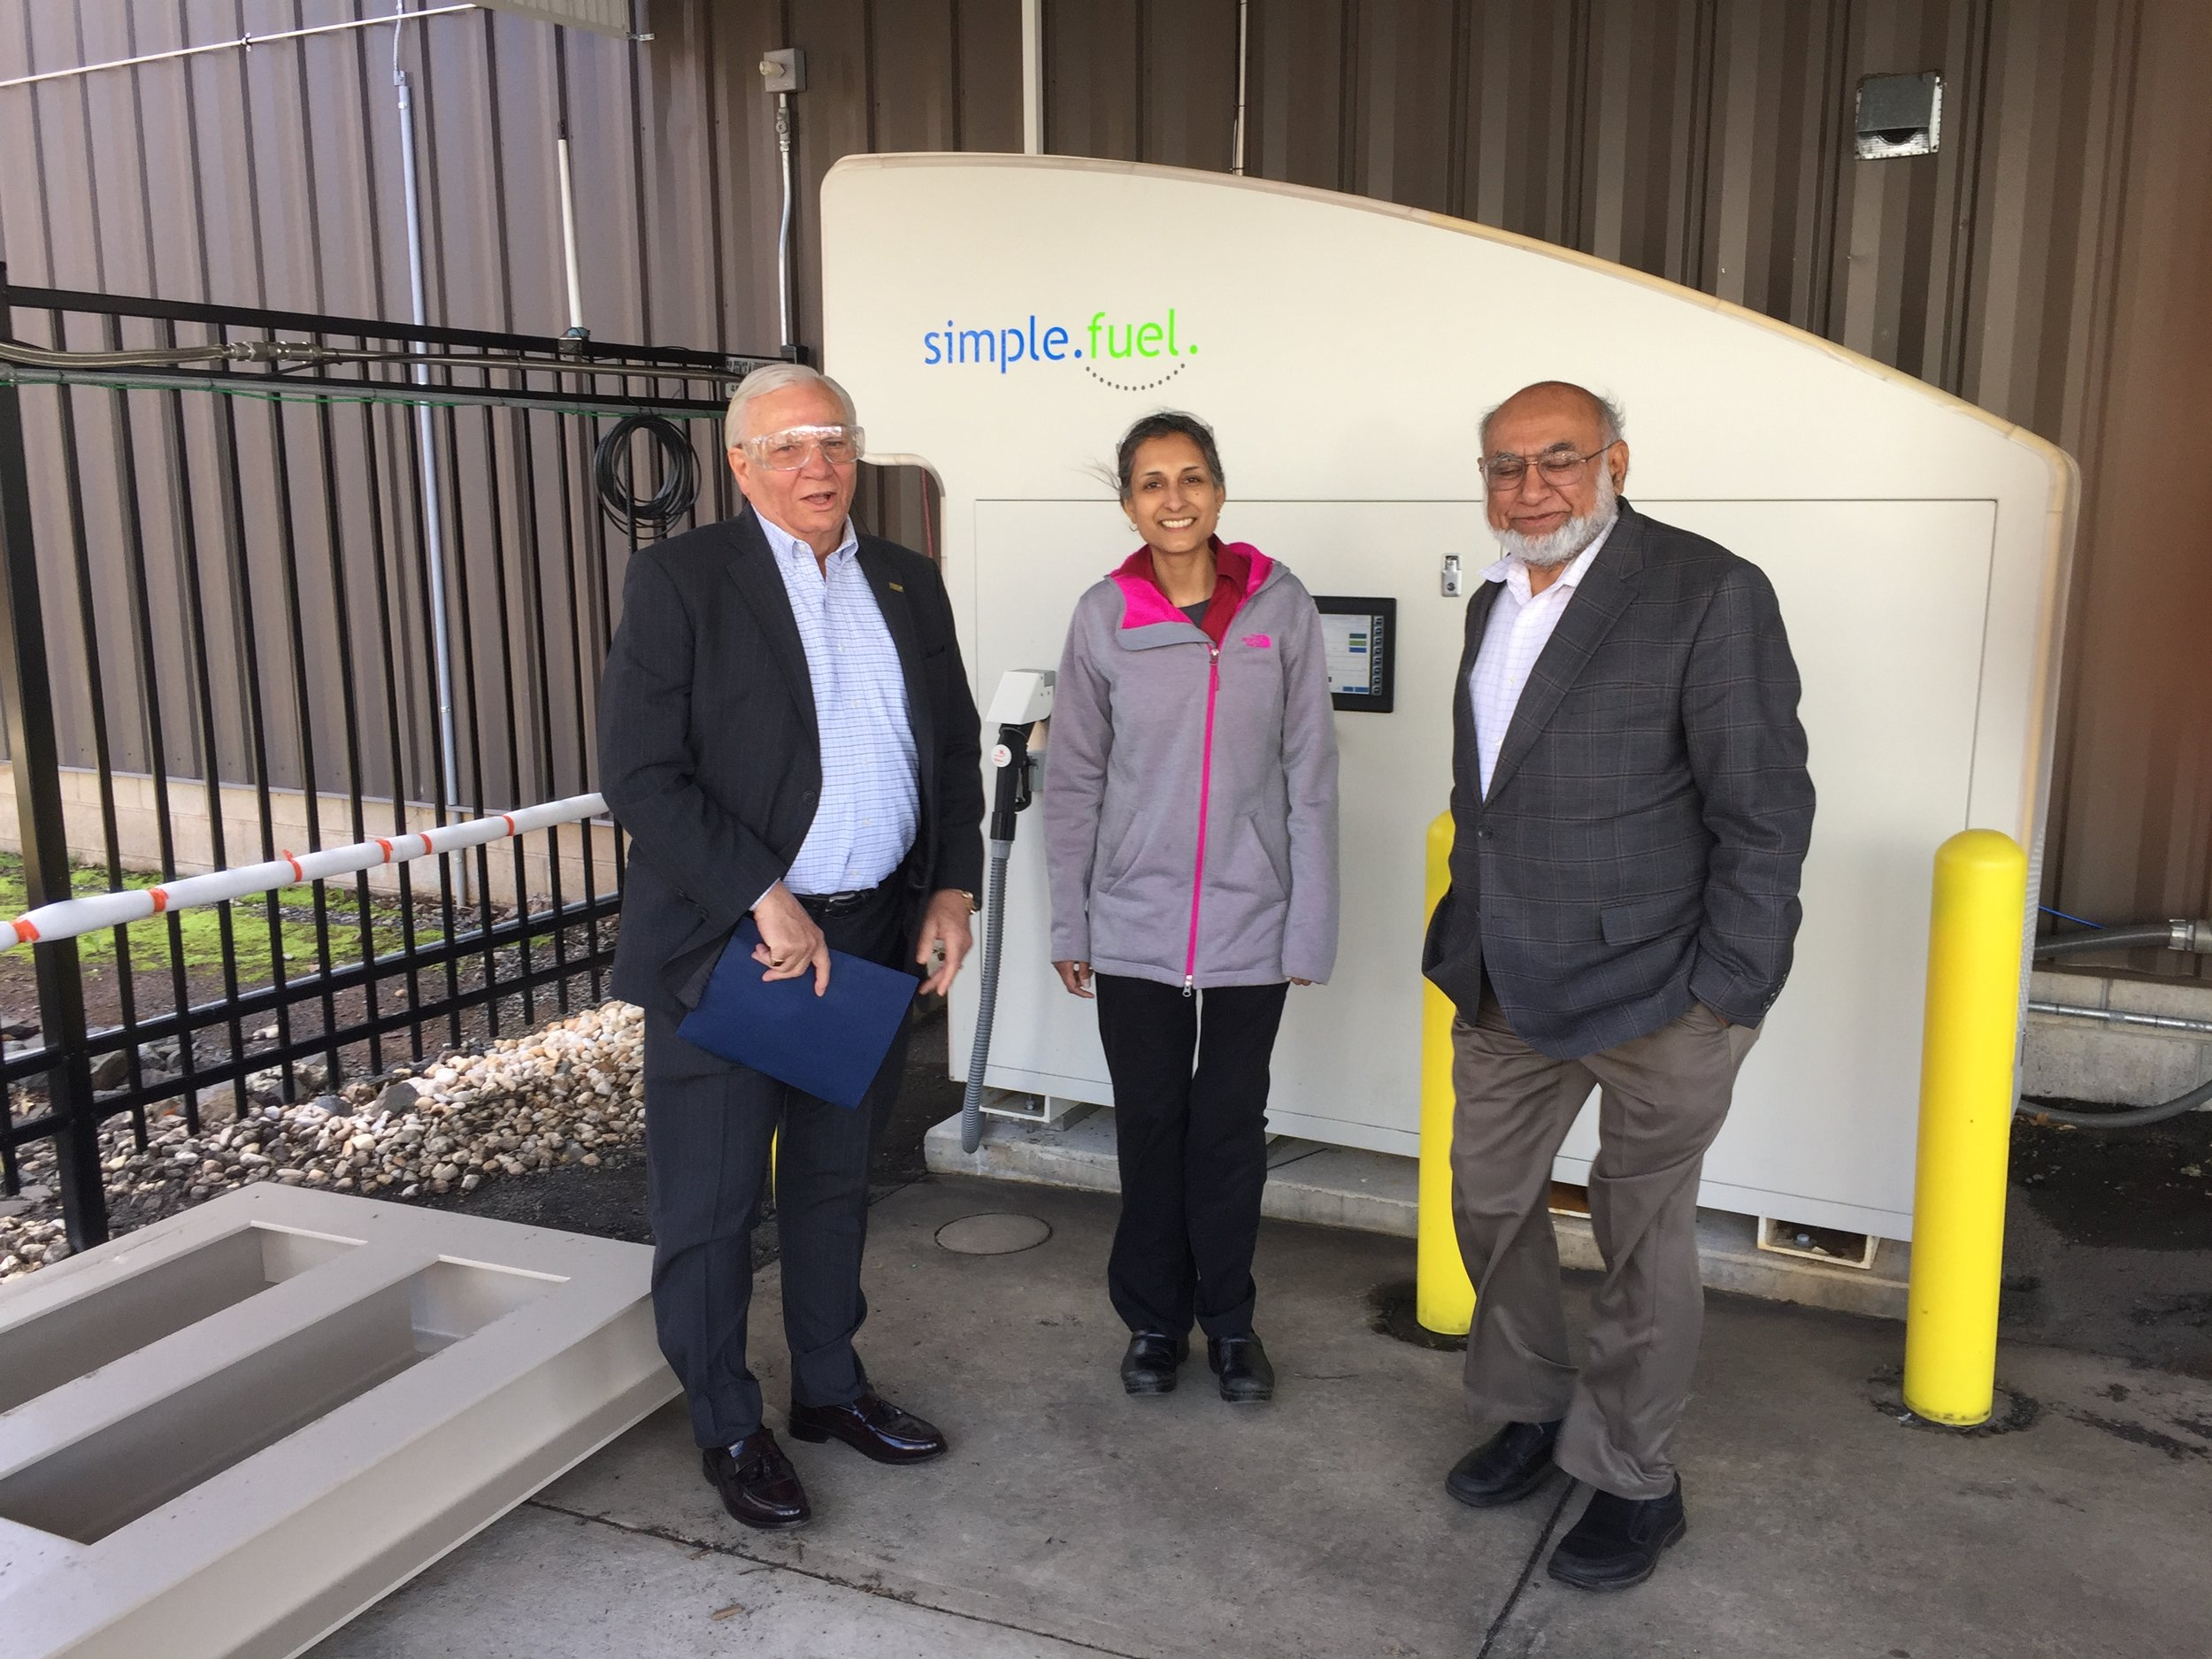 """Left to right: Senator Mensch; Nihad Kaiseruddin, PDC Machines Sales Application Engineer; and Syed Afzal, President of PDC Machines with the """"SimpleFuel"""" on-site hydrogen generation and dispensing appliance."""